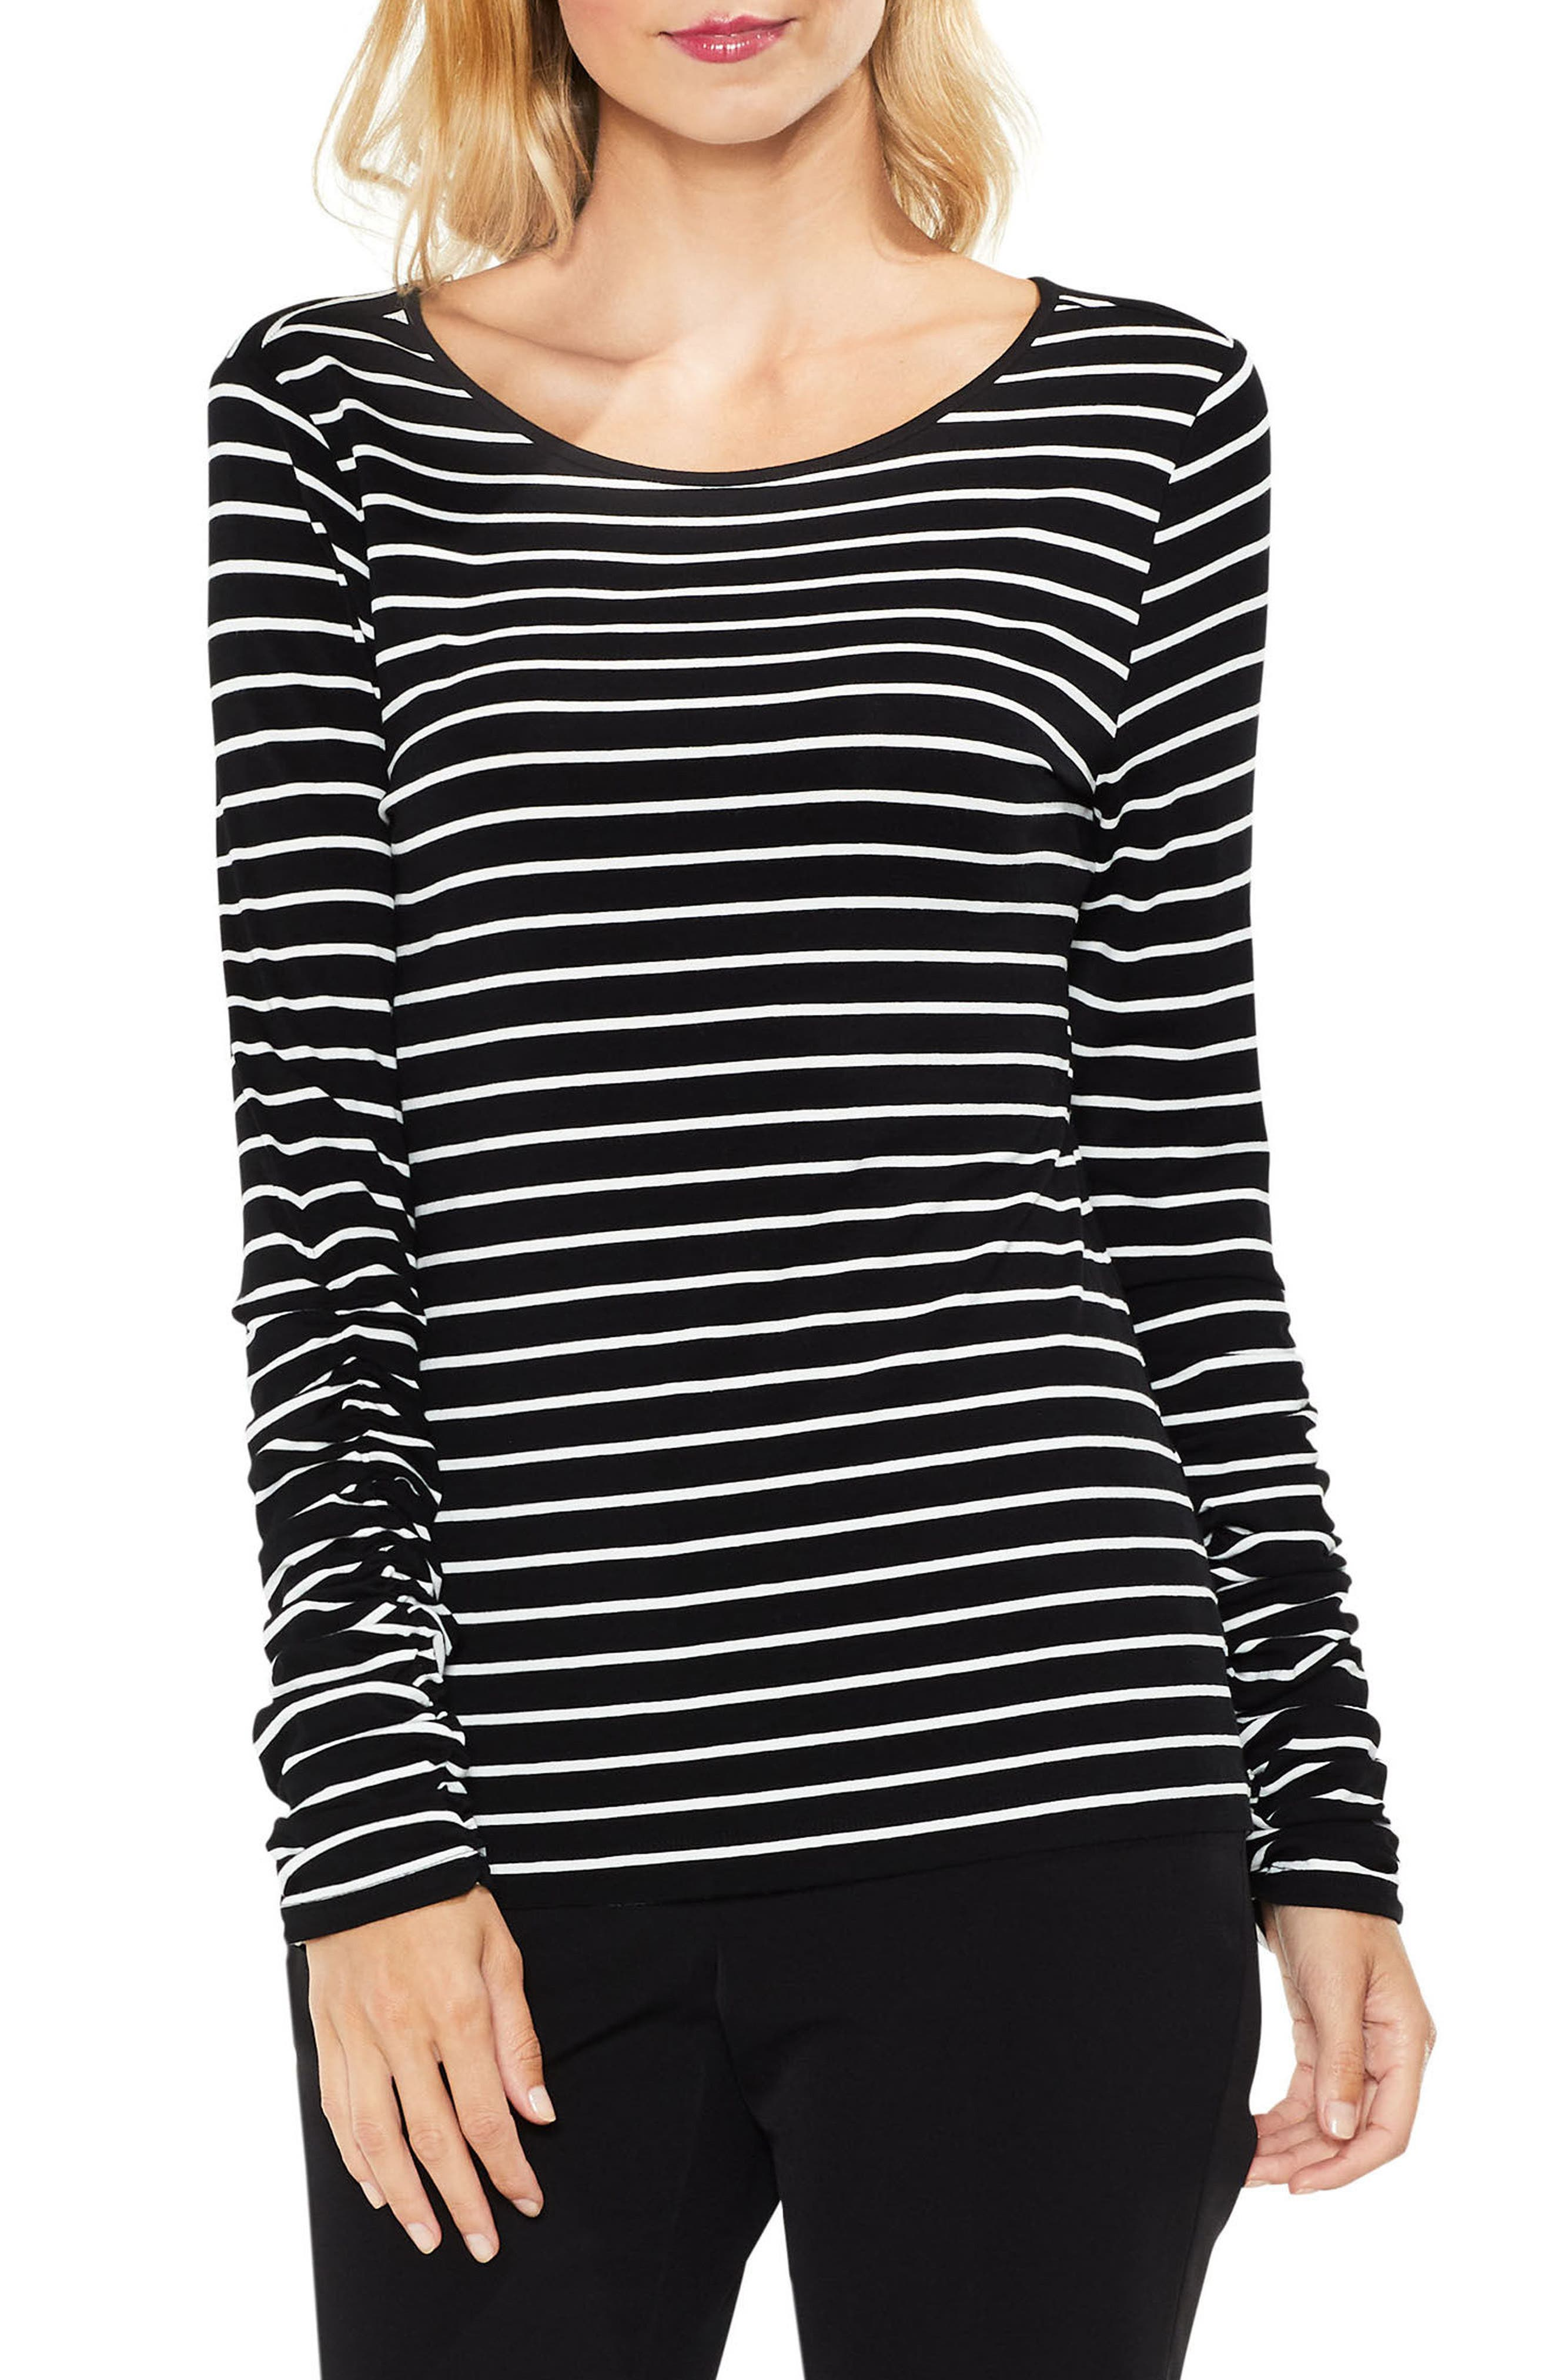 Alternate Image 1 Selected - Vince Camuto Ruched Linear Stripe Top (Regular & Petite)